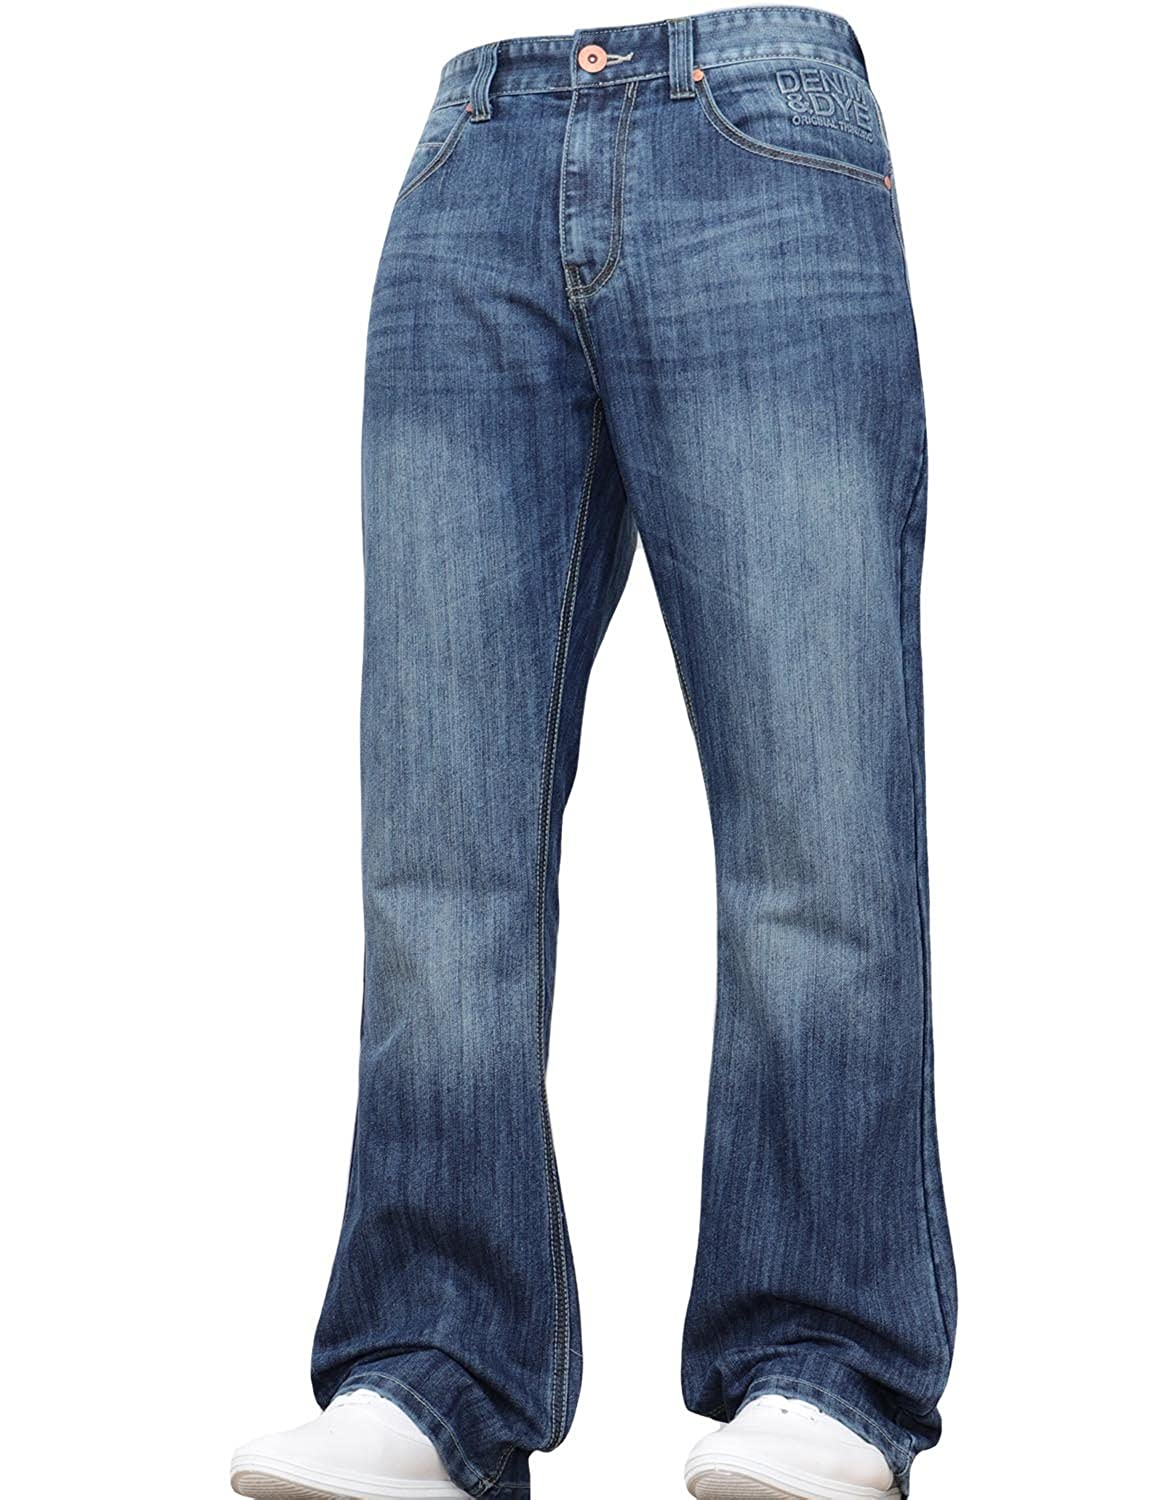 BNWT New Mens Bootcut Flared Wide Leg Bell Bottom Blue Denim Jeans Pants Big King Size All Waist Sizes